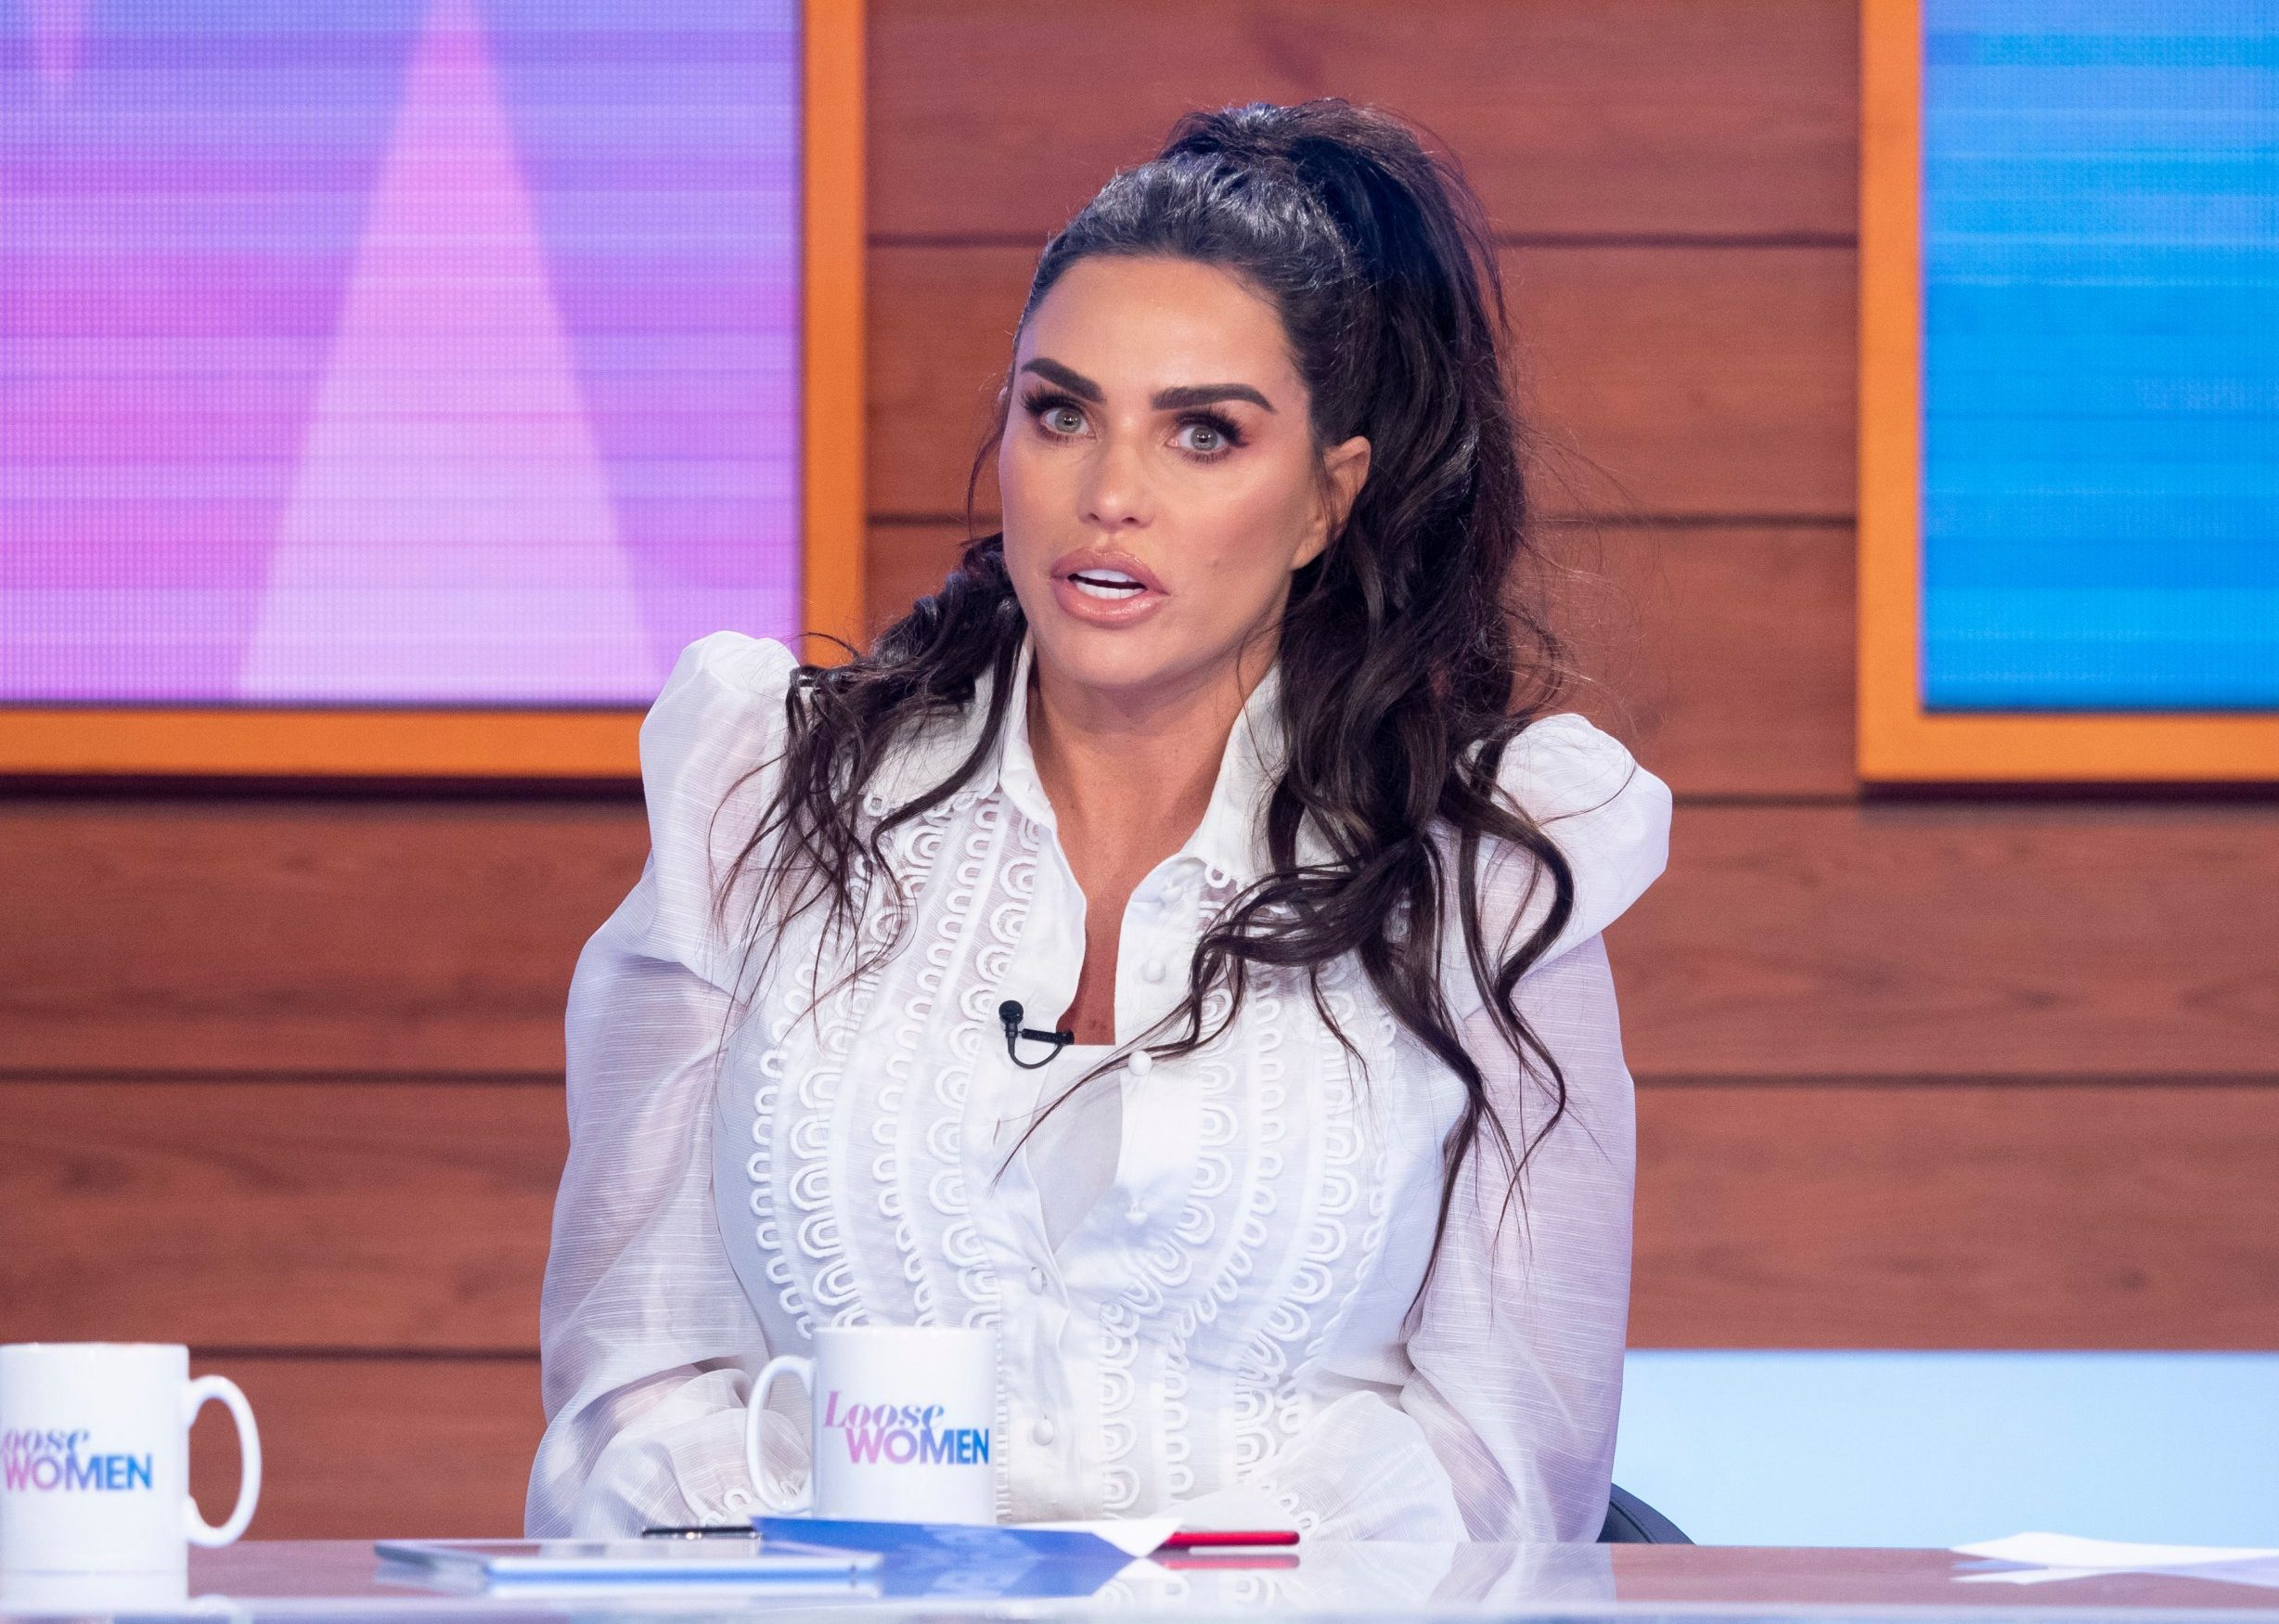 Katie Price faces fierce backlash for 'joking' about driving ban